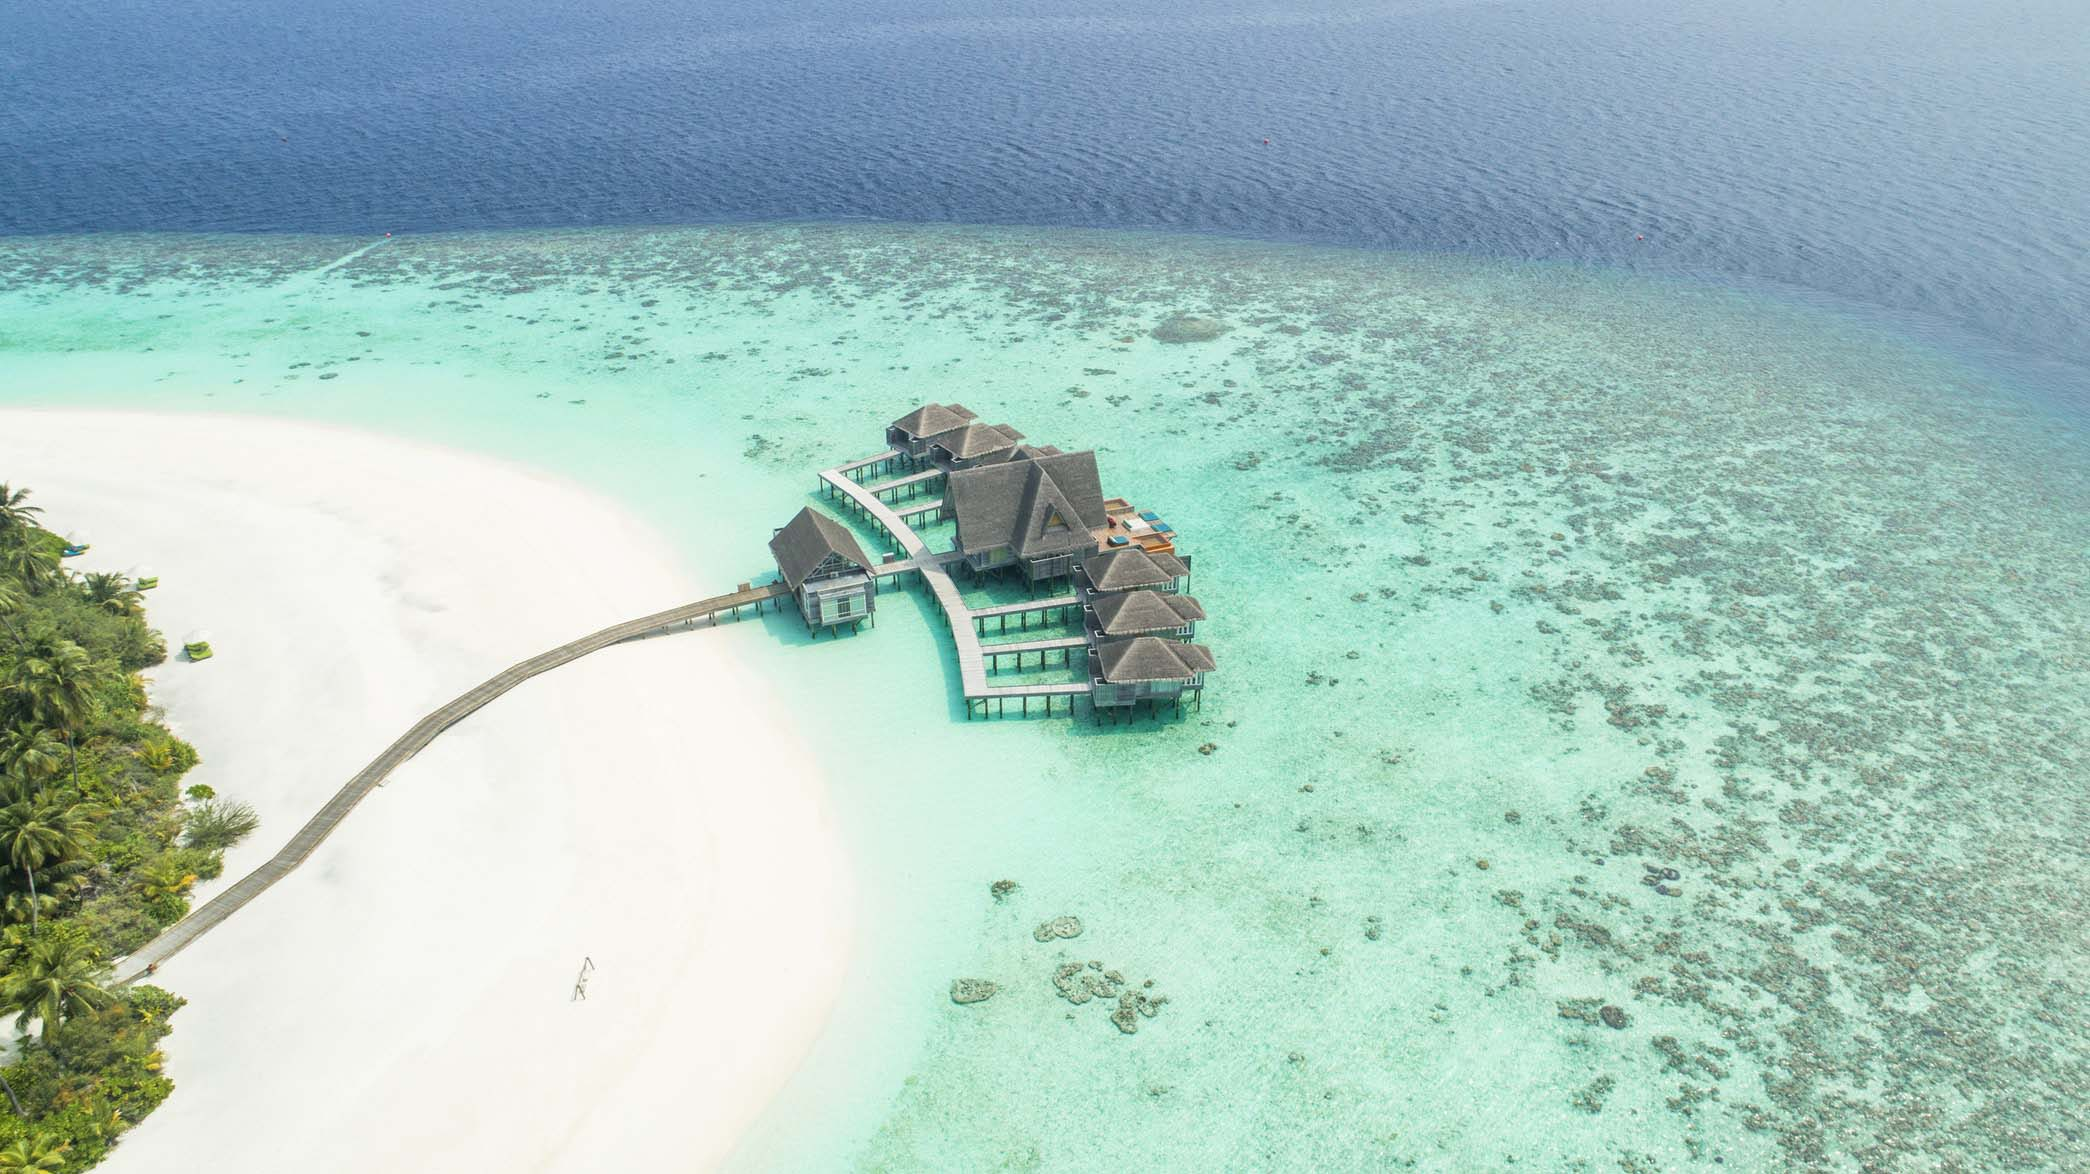 Maldives is a luxurious tropical paradise